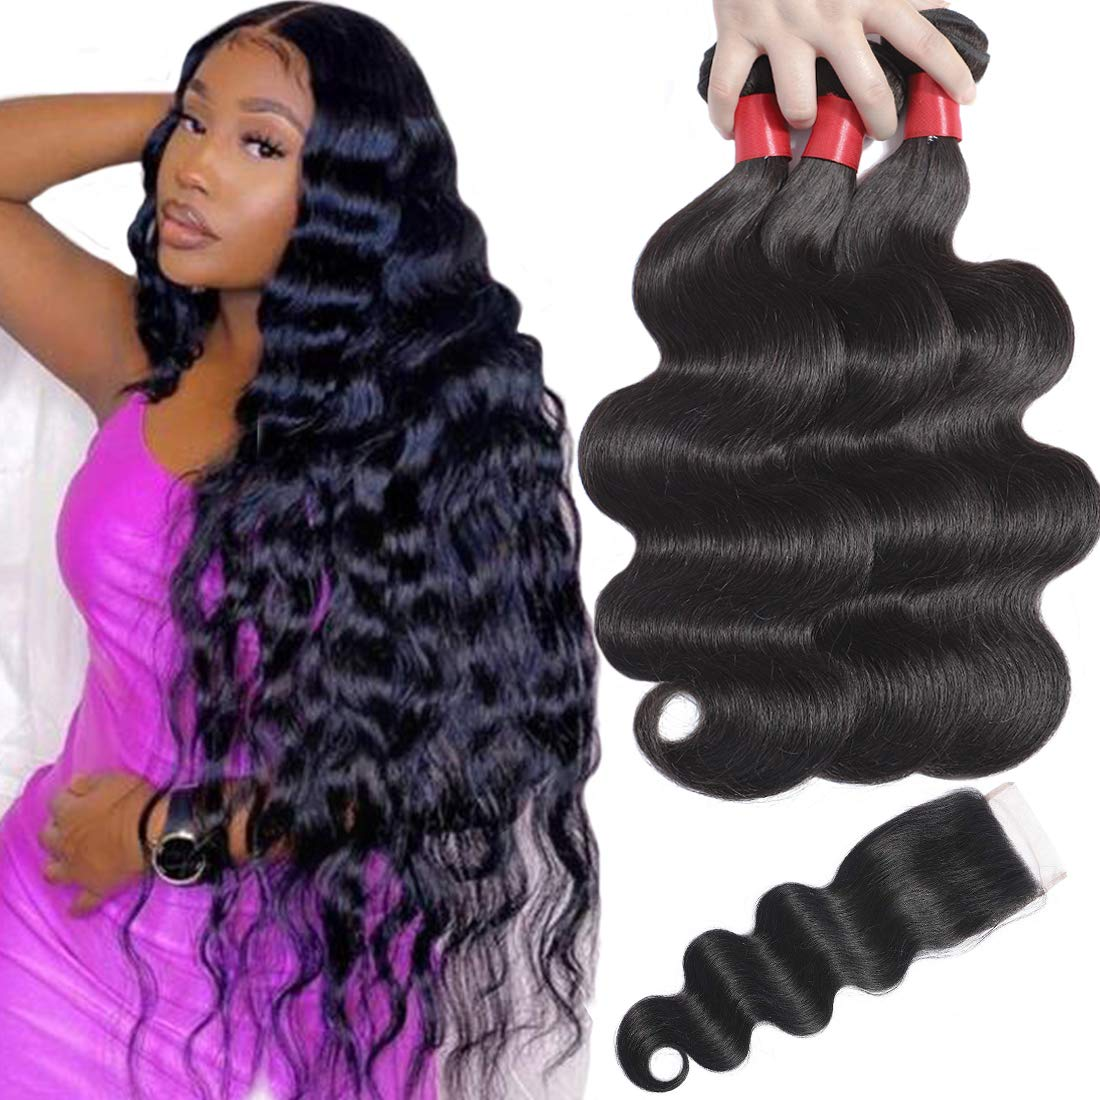 Misoun Human Hair Body Wave Bundles with OFFicial store Brazil 4x4 Lace Closure Max 83% OFF